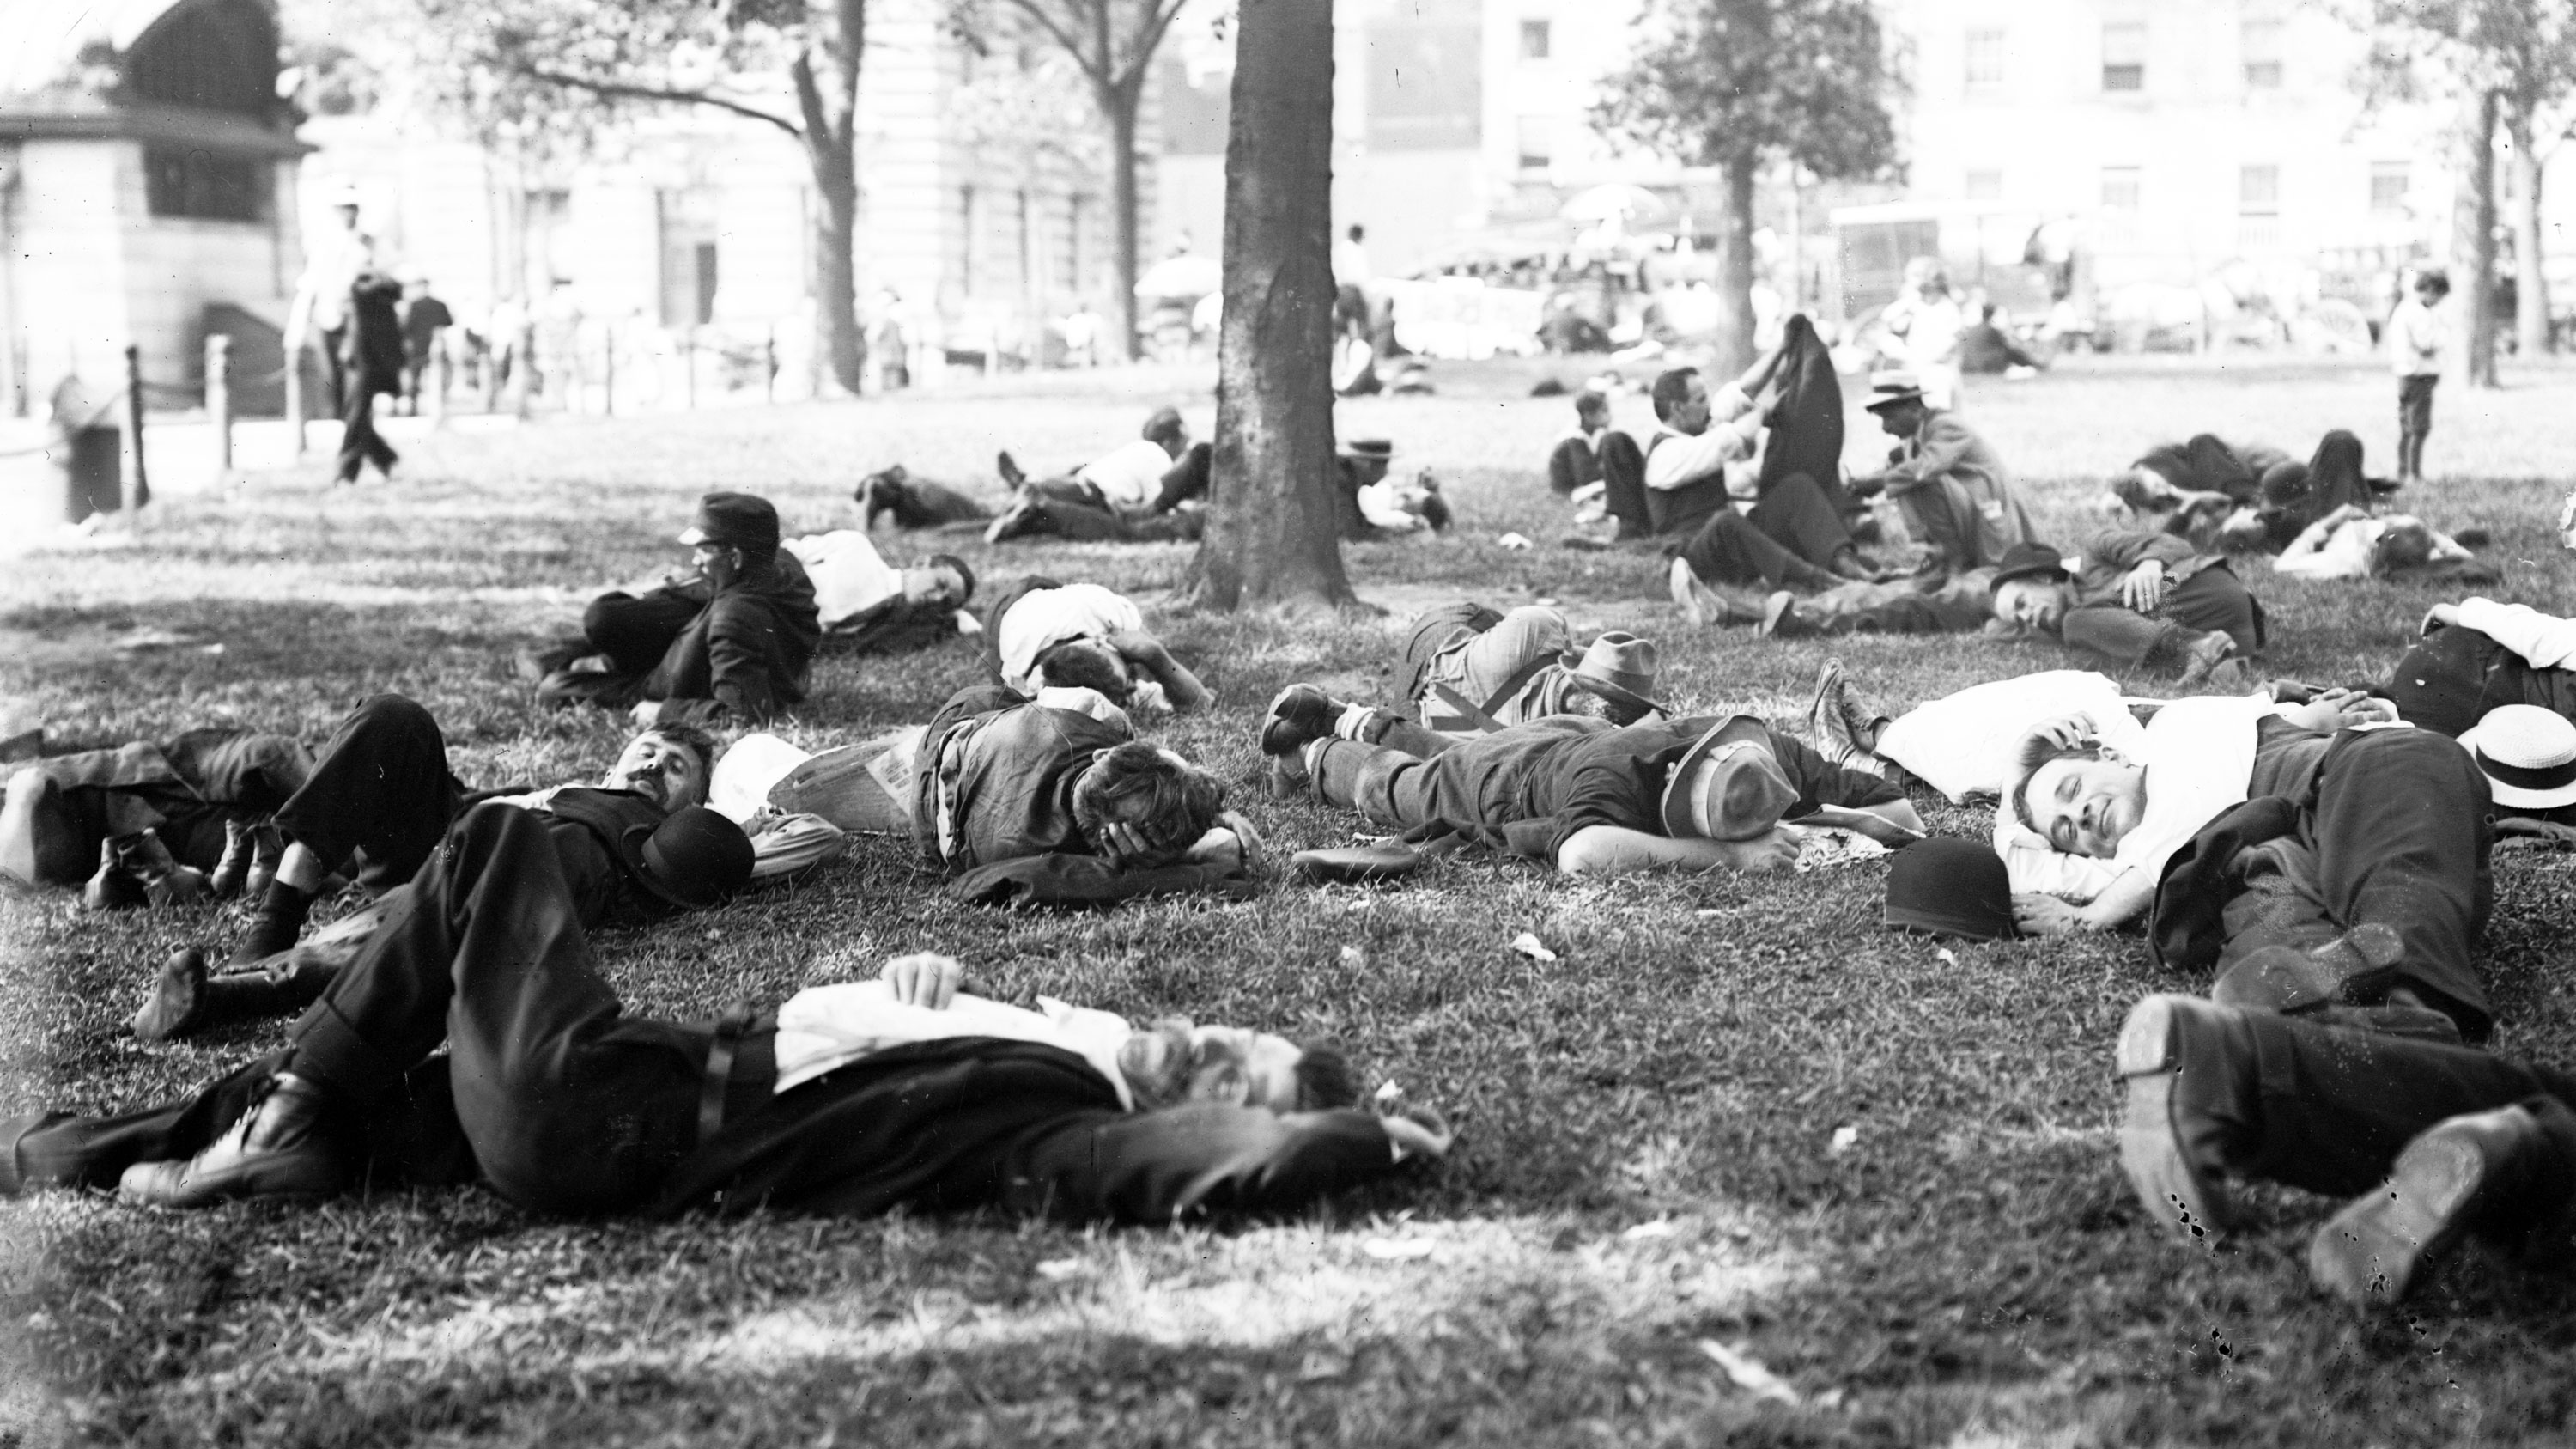 The Killer 1911 Heat Wave That Drove People Insane - HISTORY